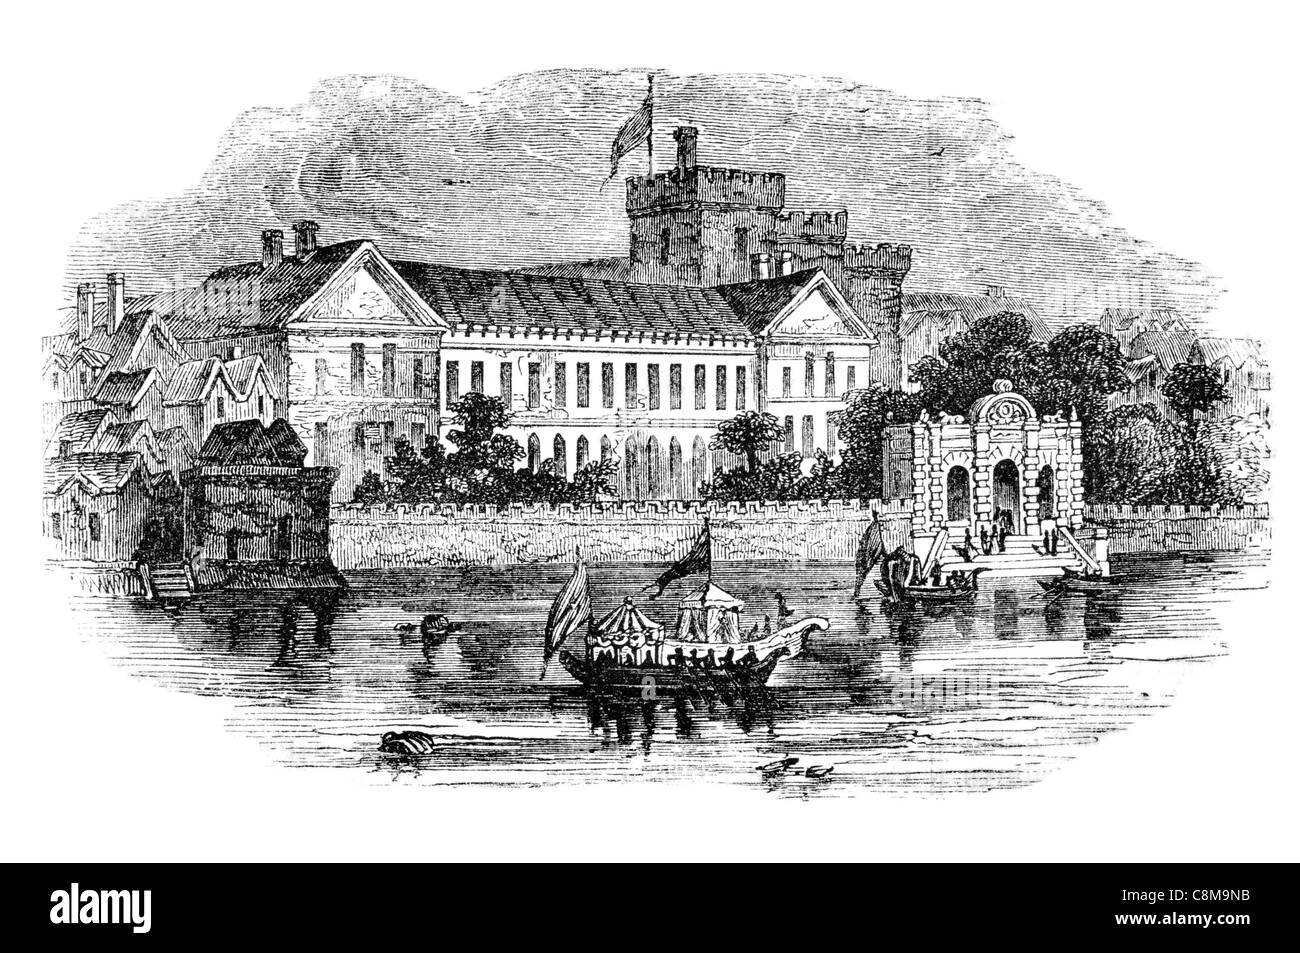 York House Palace Whitehall 17th Century Castle river bank boat London - Stock Image